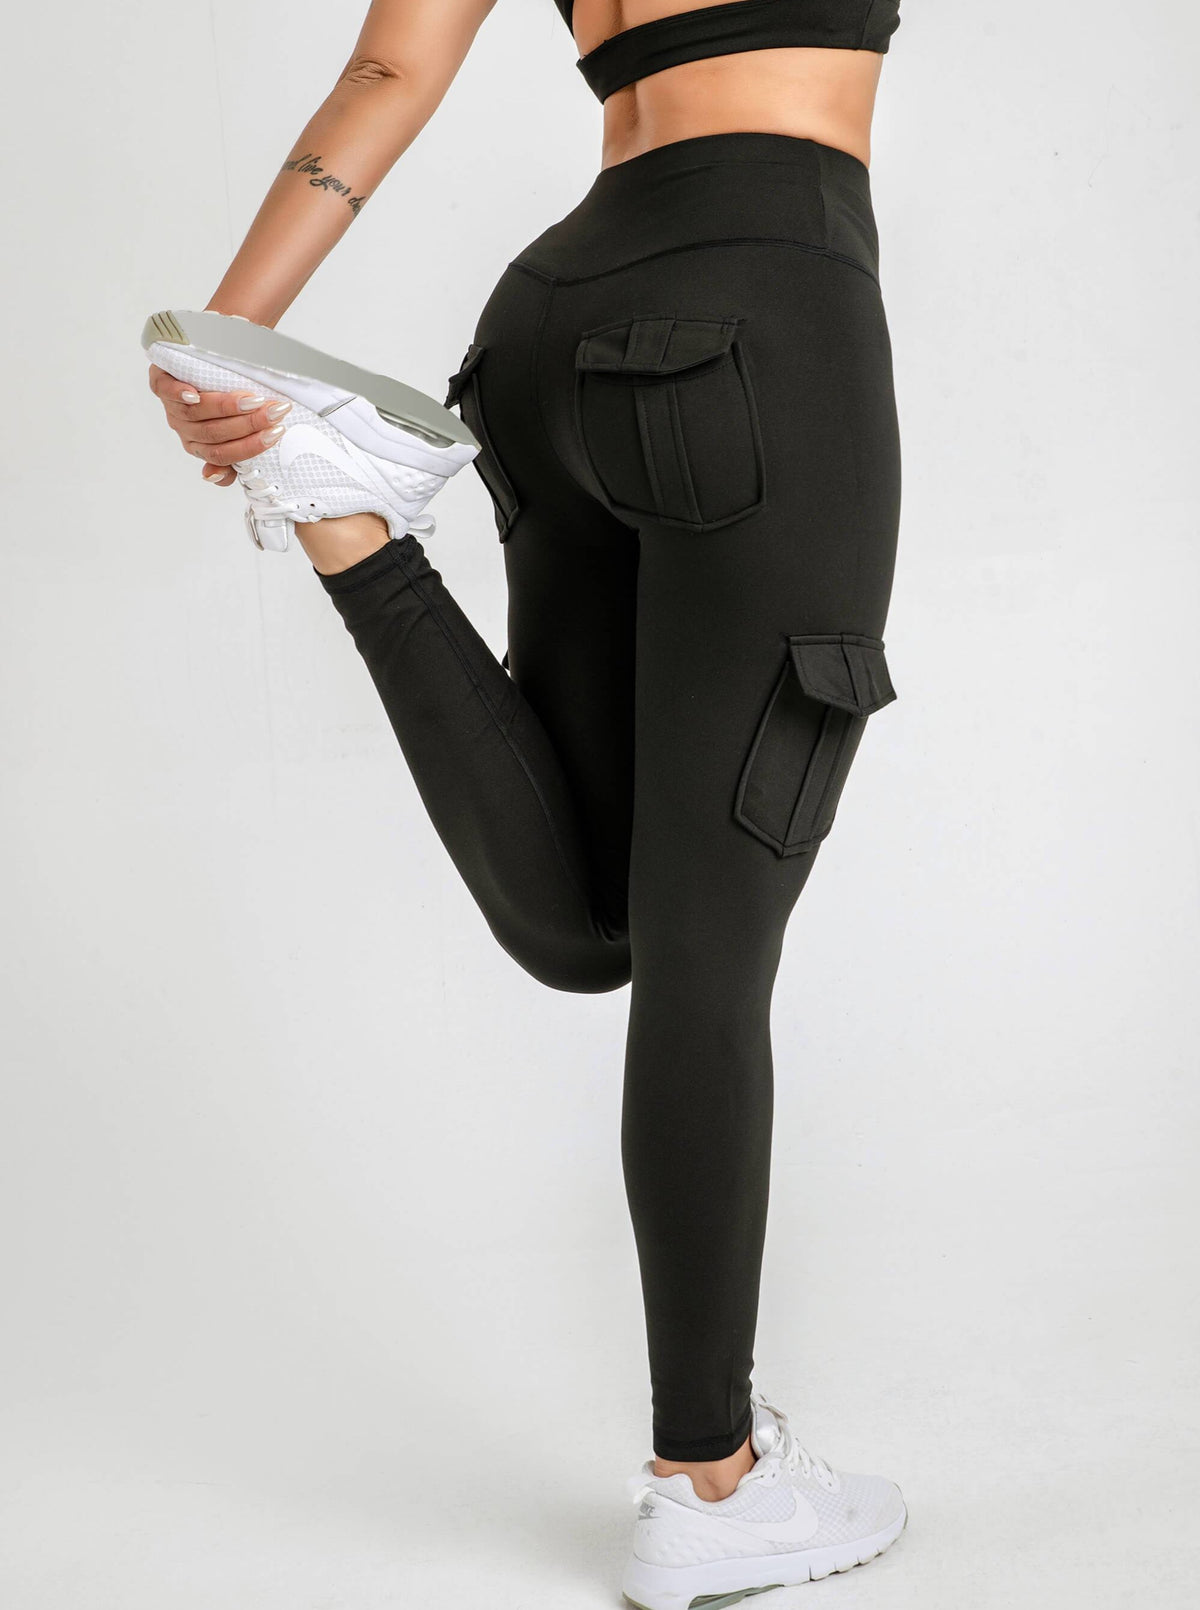 v2 Era Cargo Pocket Leggings - Buttery Soft